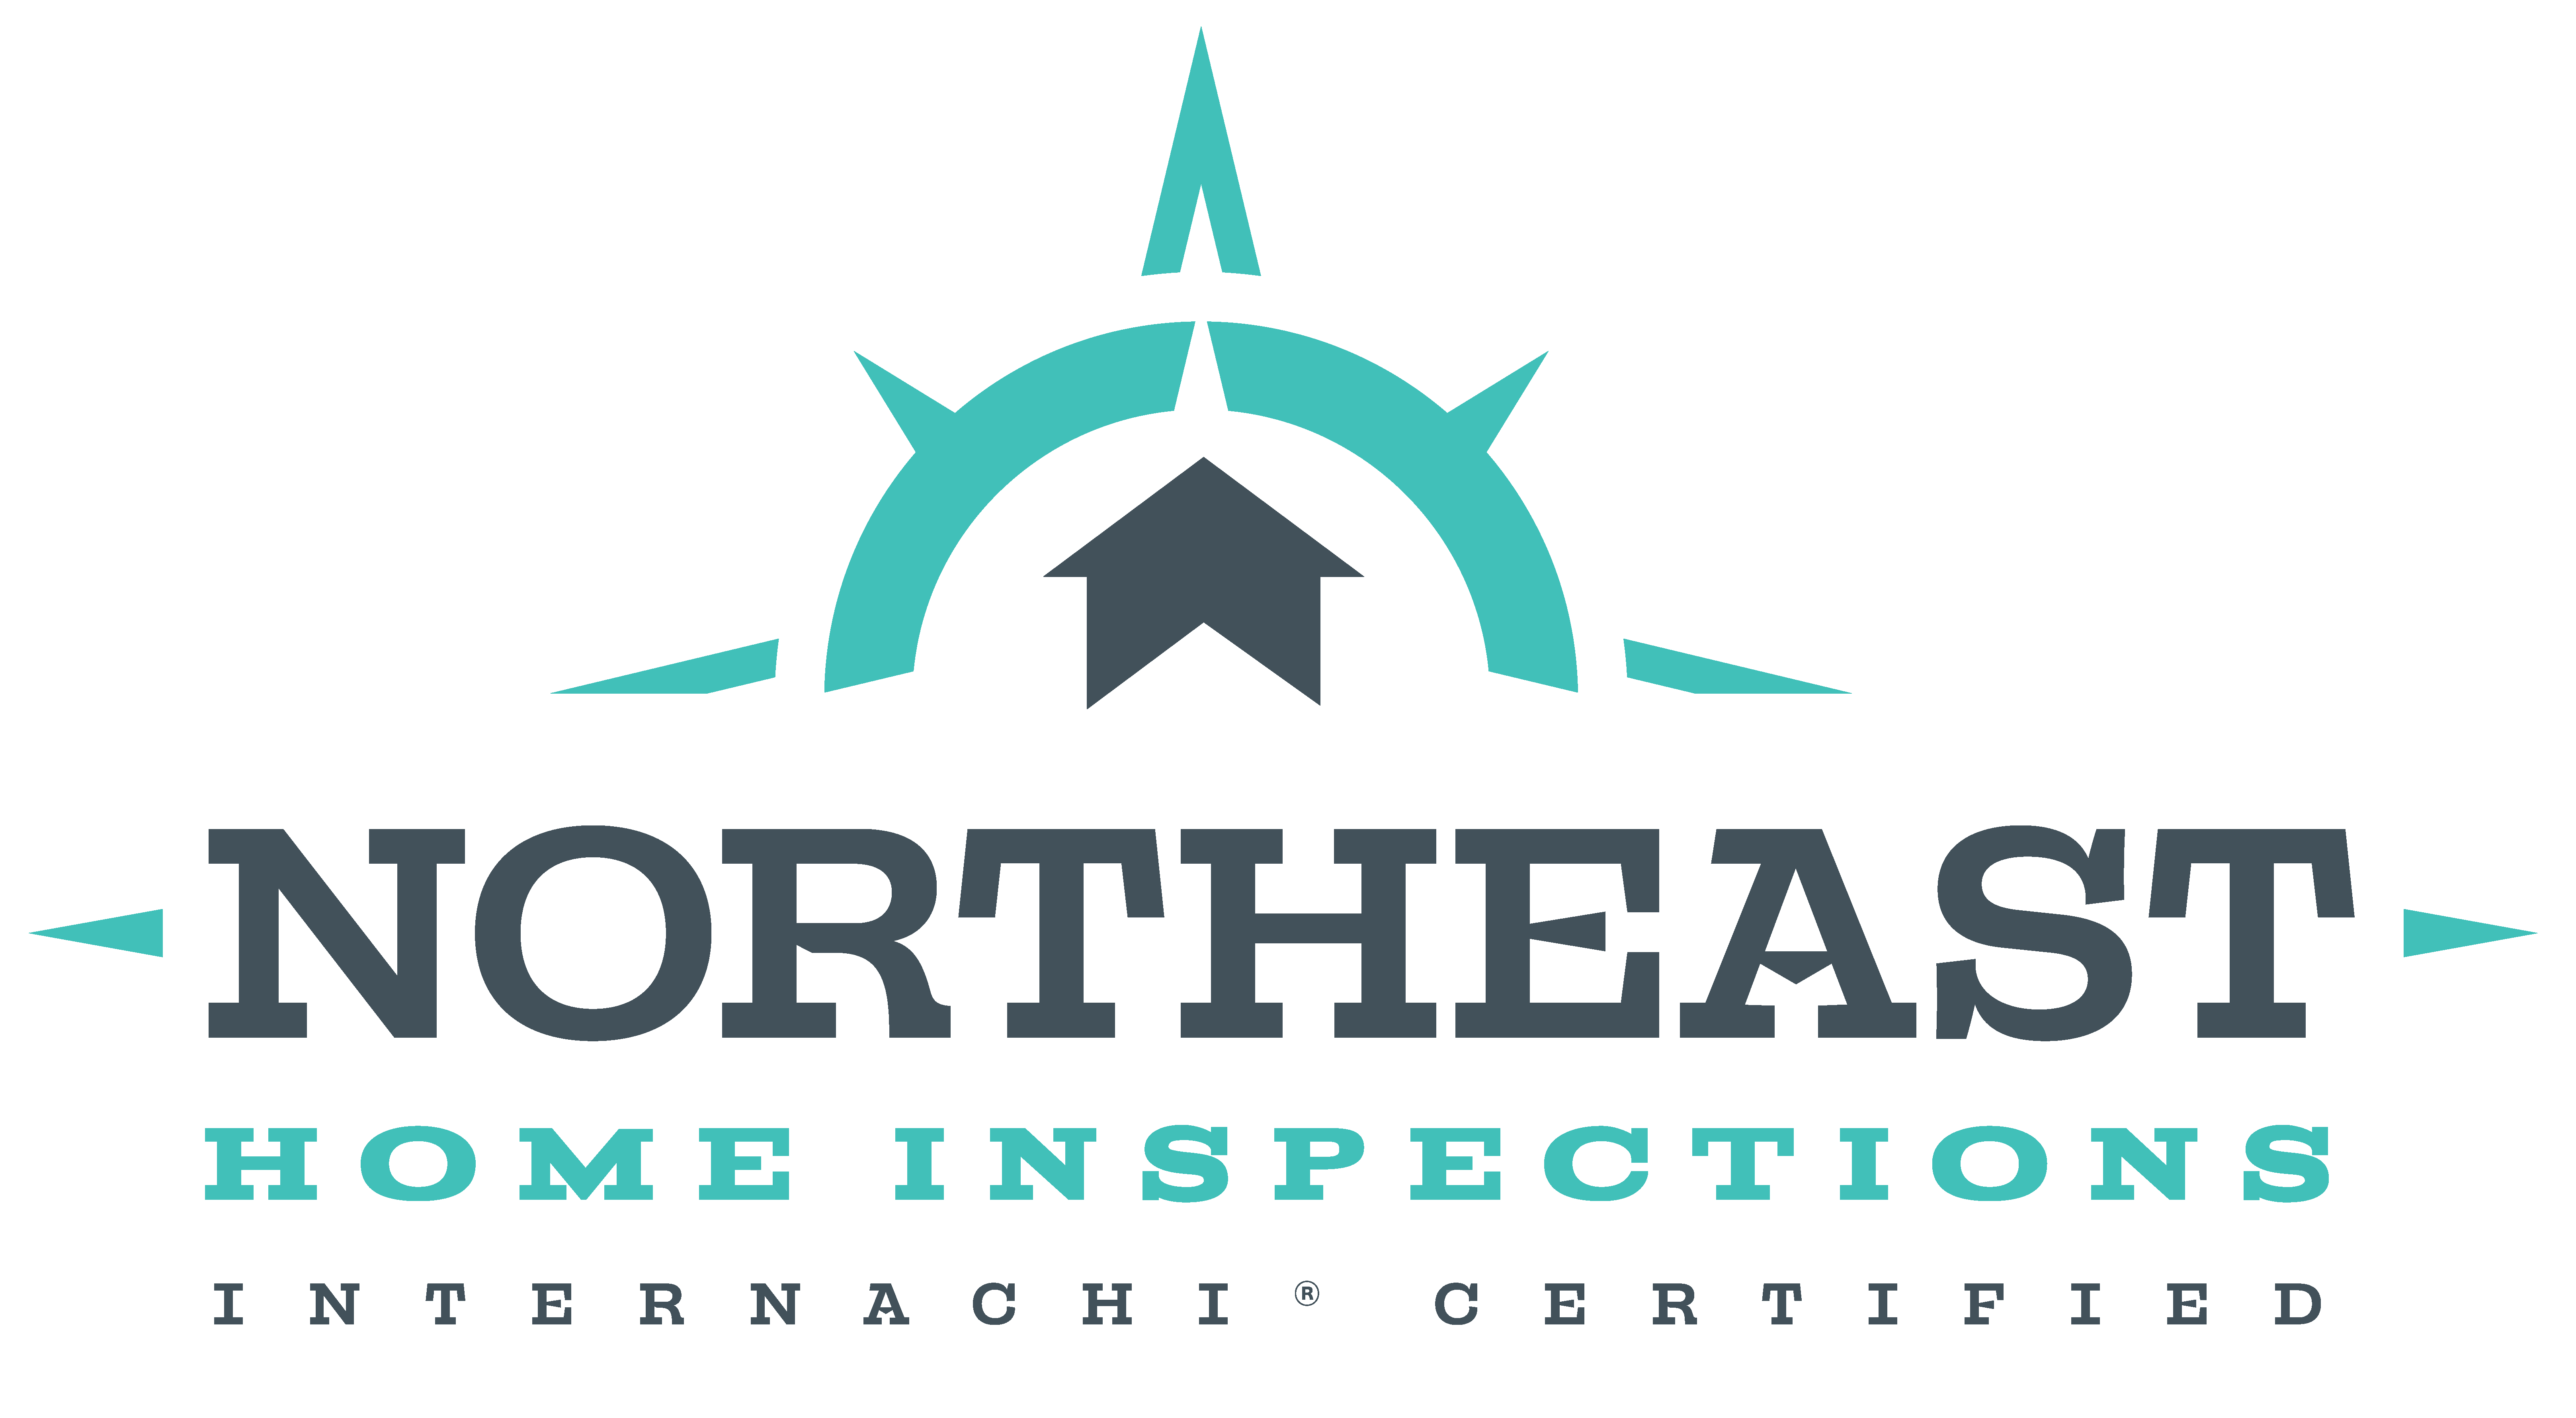 Northeast Home Inspections